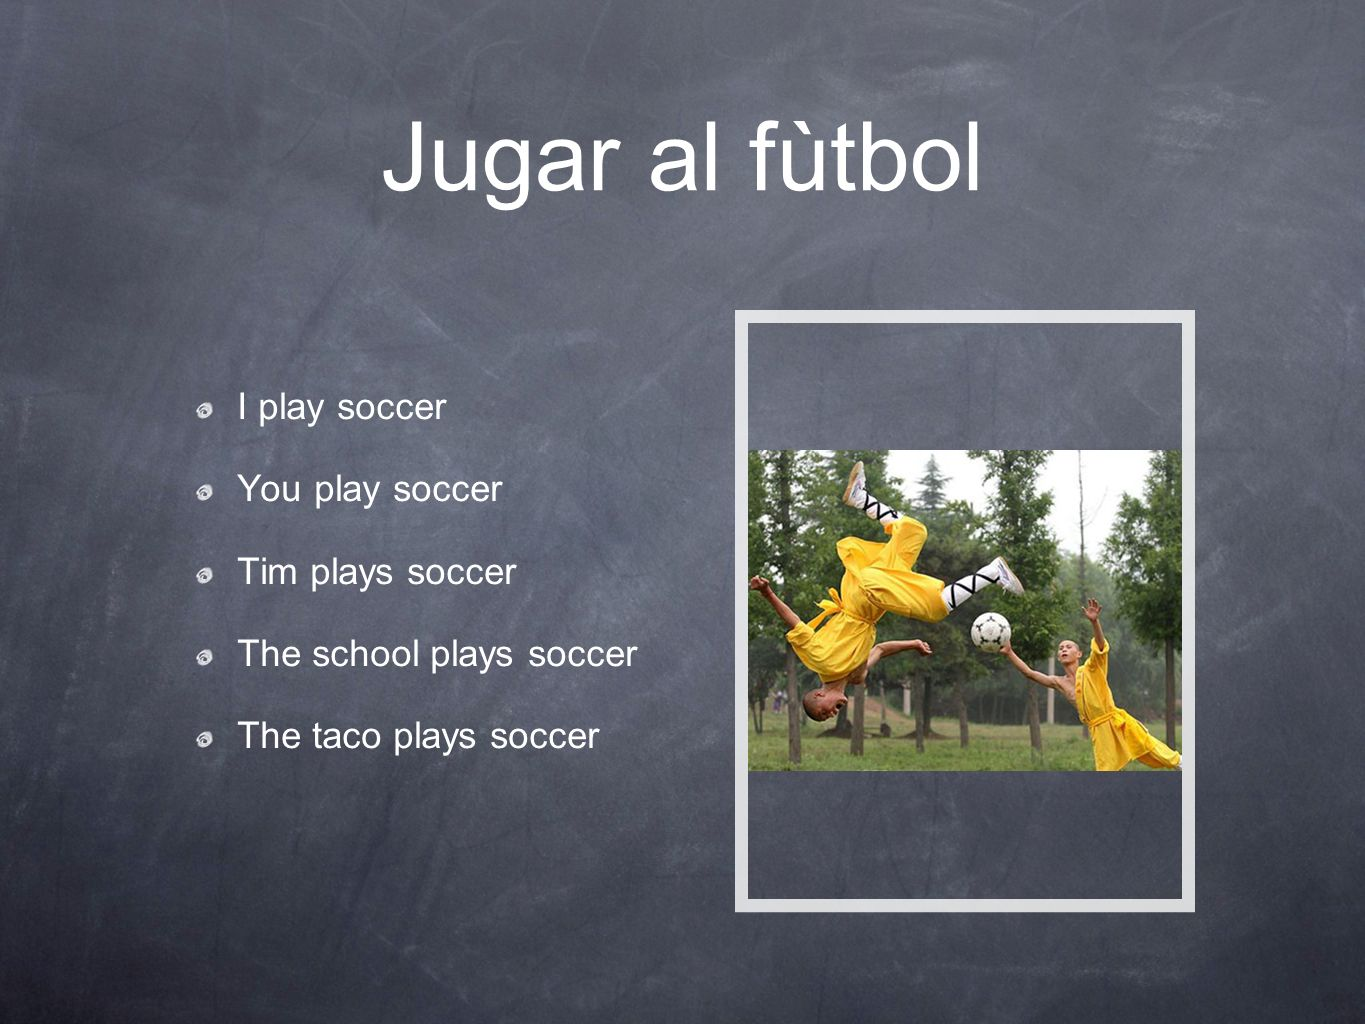 Jugar al fùtbol I play soccer You play soccer Tim plays soccer The school plays soccer The taco plays soccer